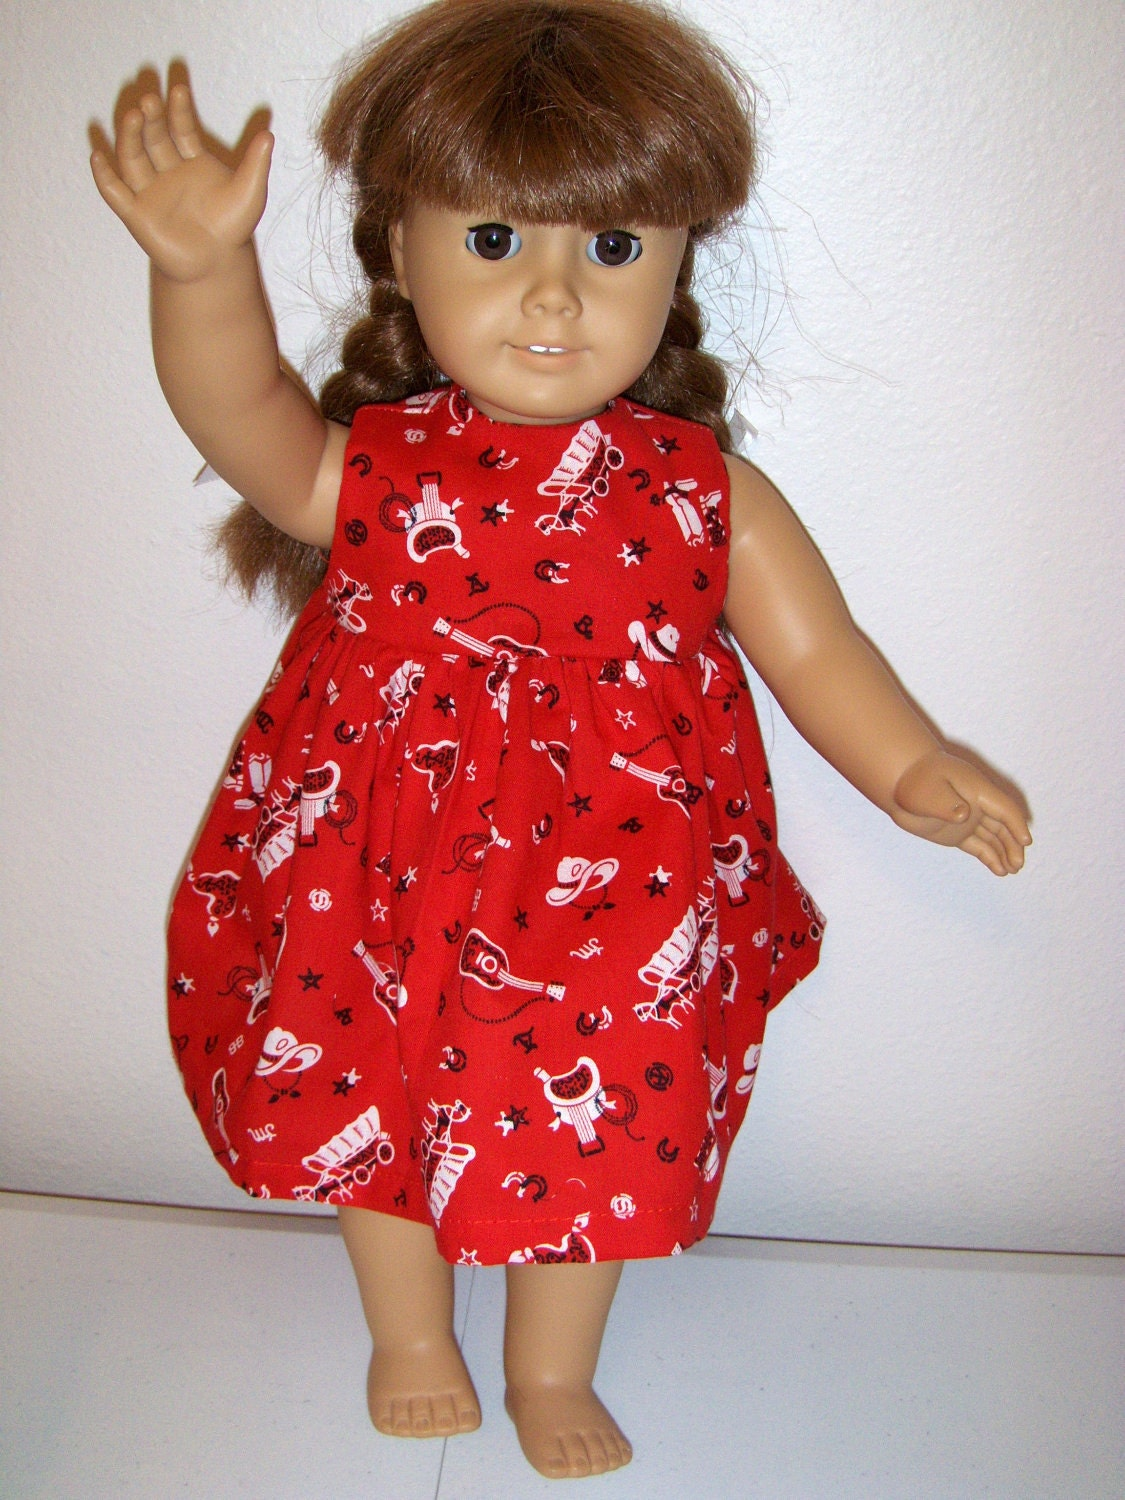 18 inch doll, american girl, cute red cowgirl dress. From MissyOodles